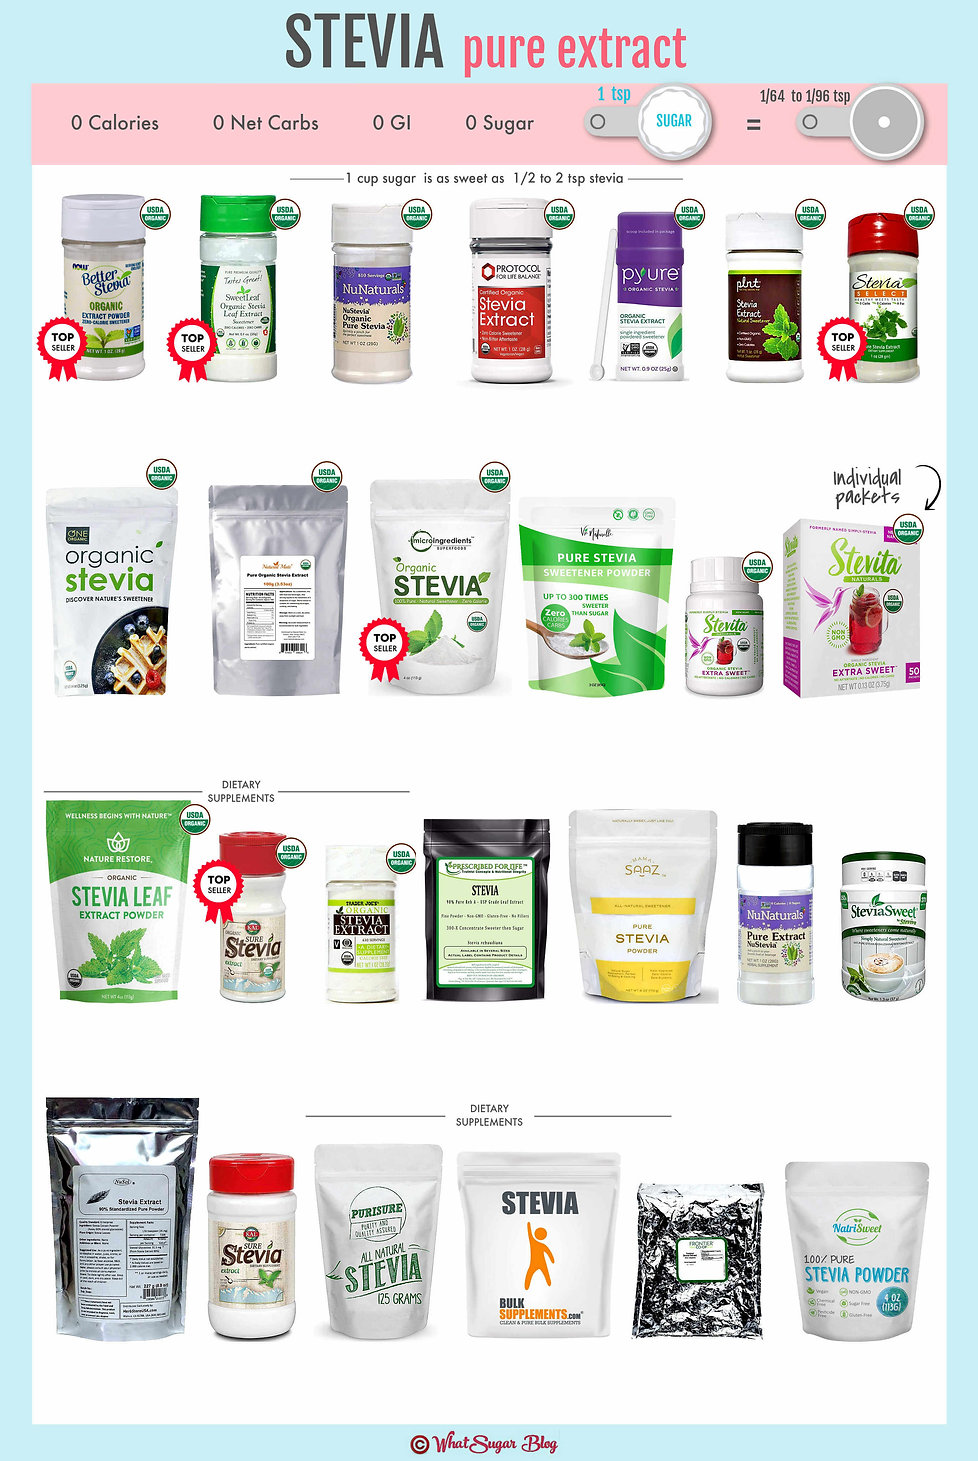 Can you get pure stevia extract?